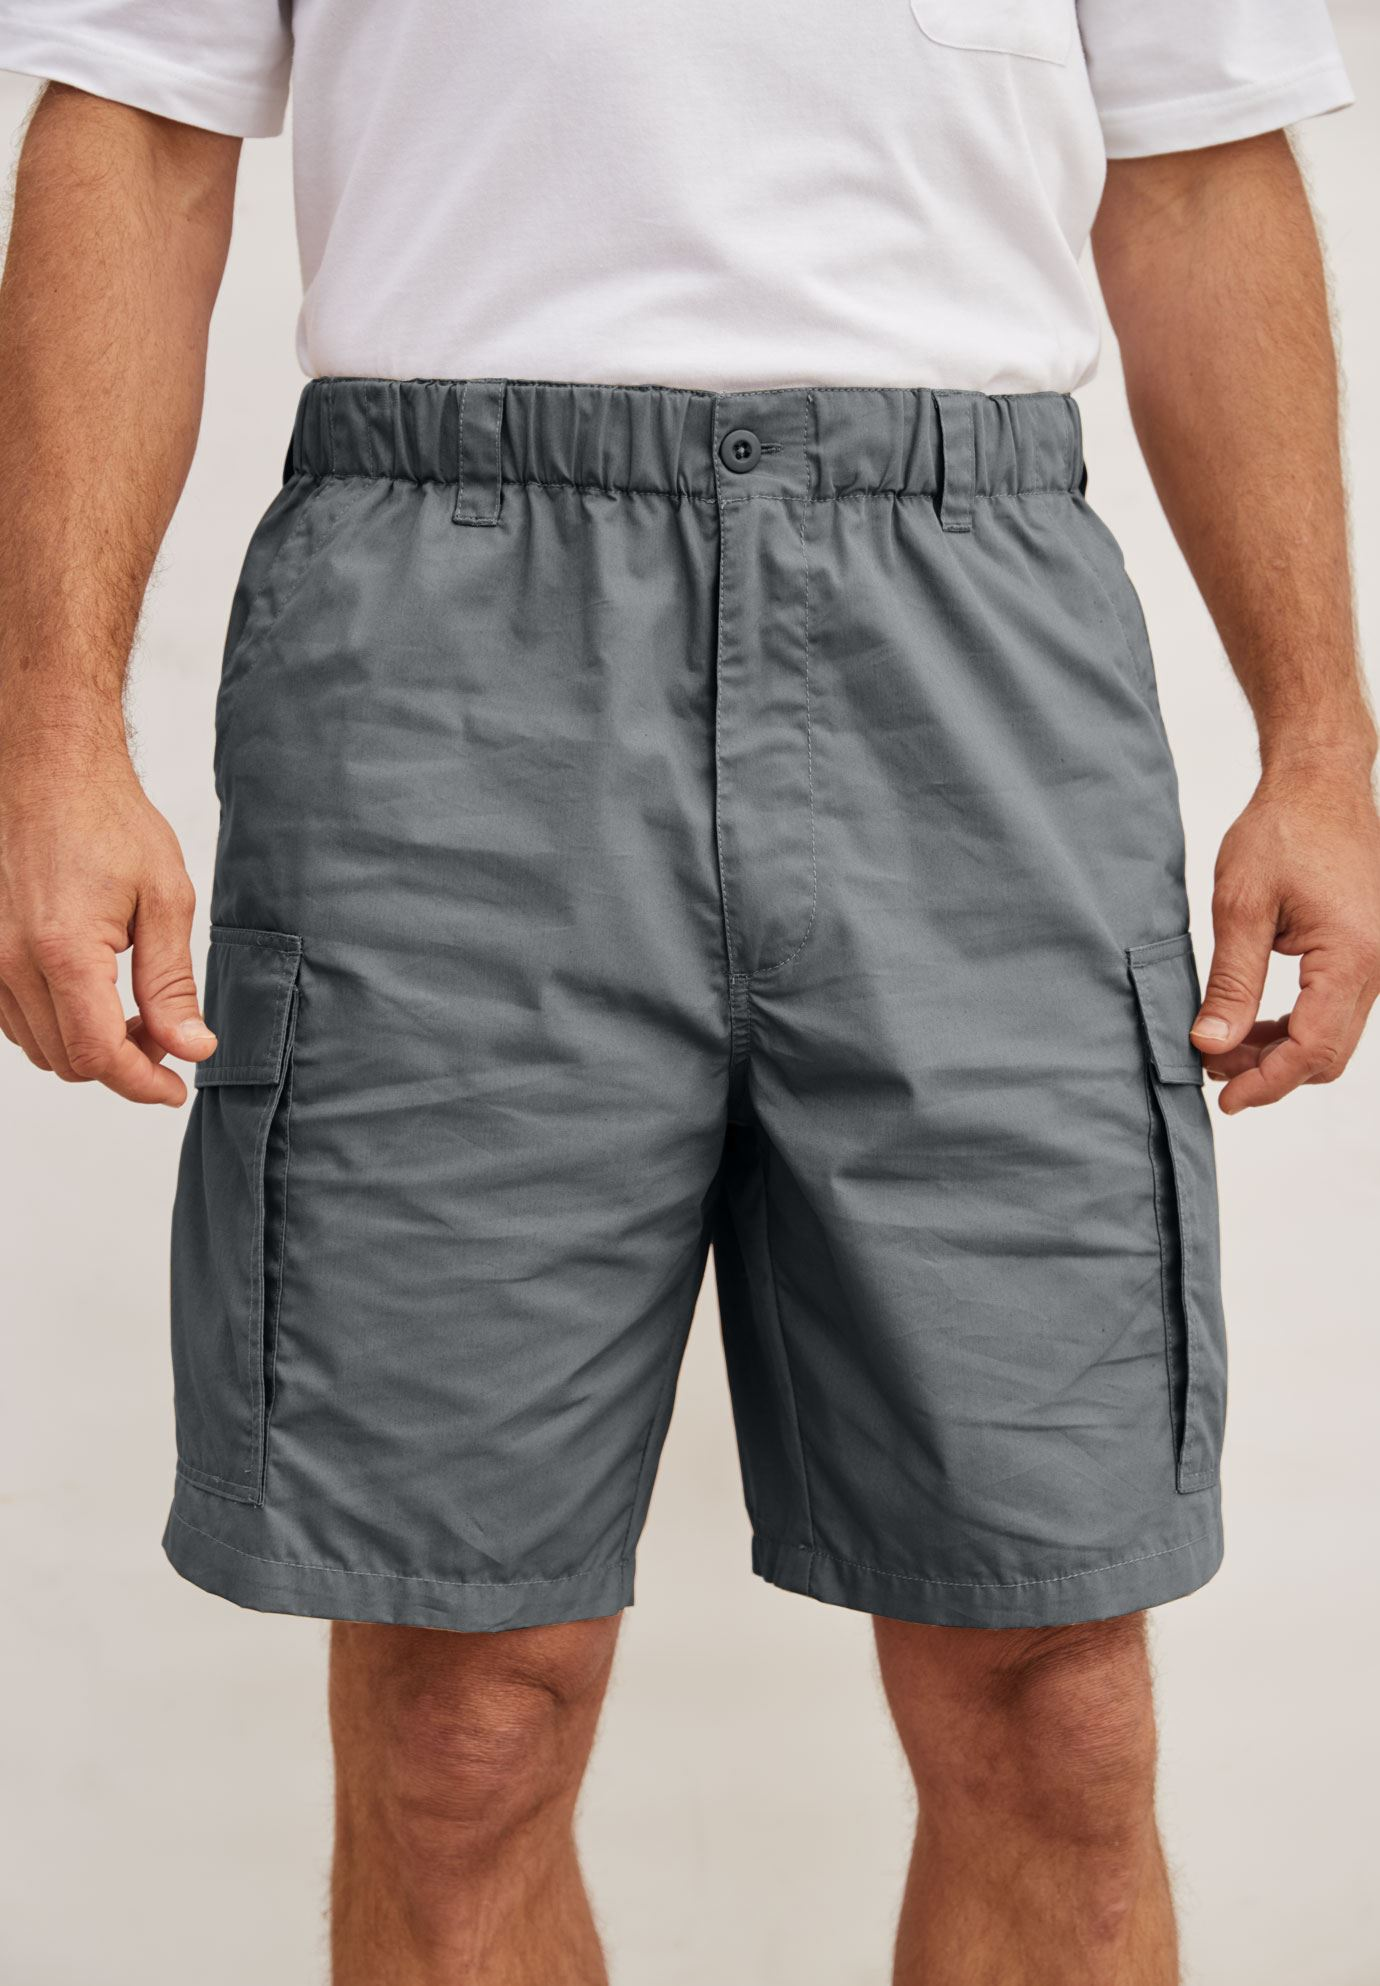 ff3c0df2dc Moisture Wicking Cargo Shorts | Plus Size Pants & Shorts | Full Beauty